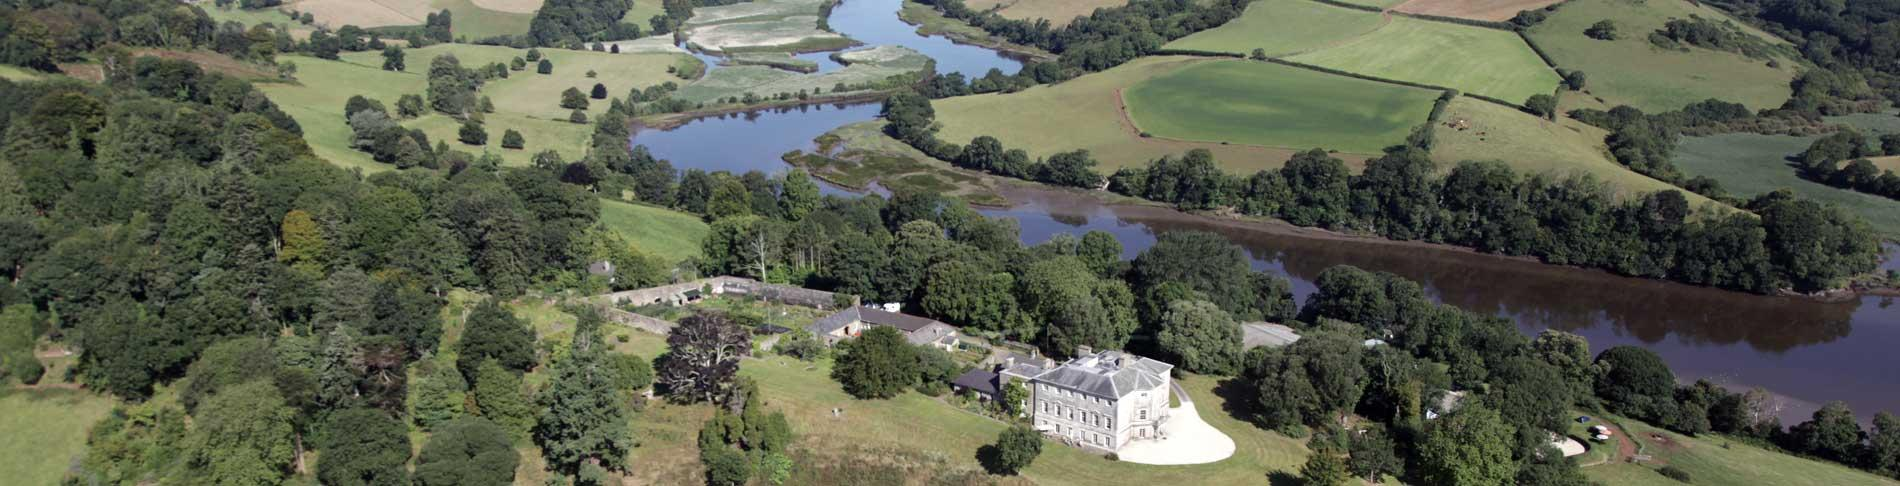 aerial view of Sharpham House & River Dart